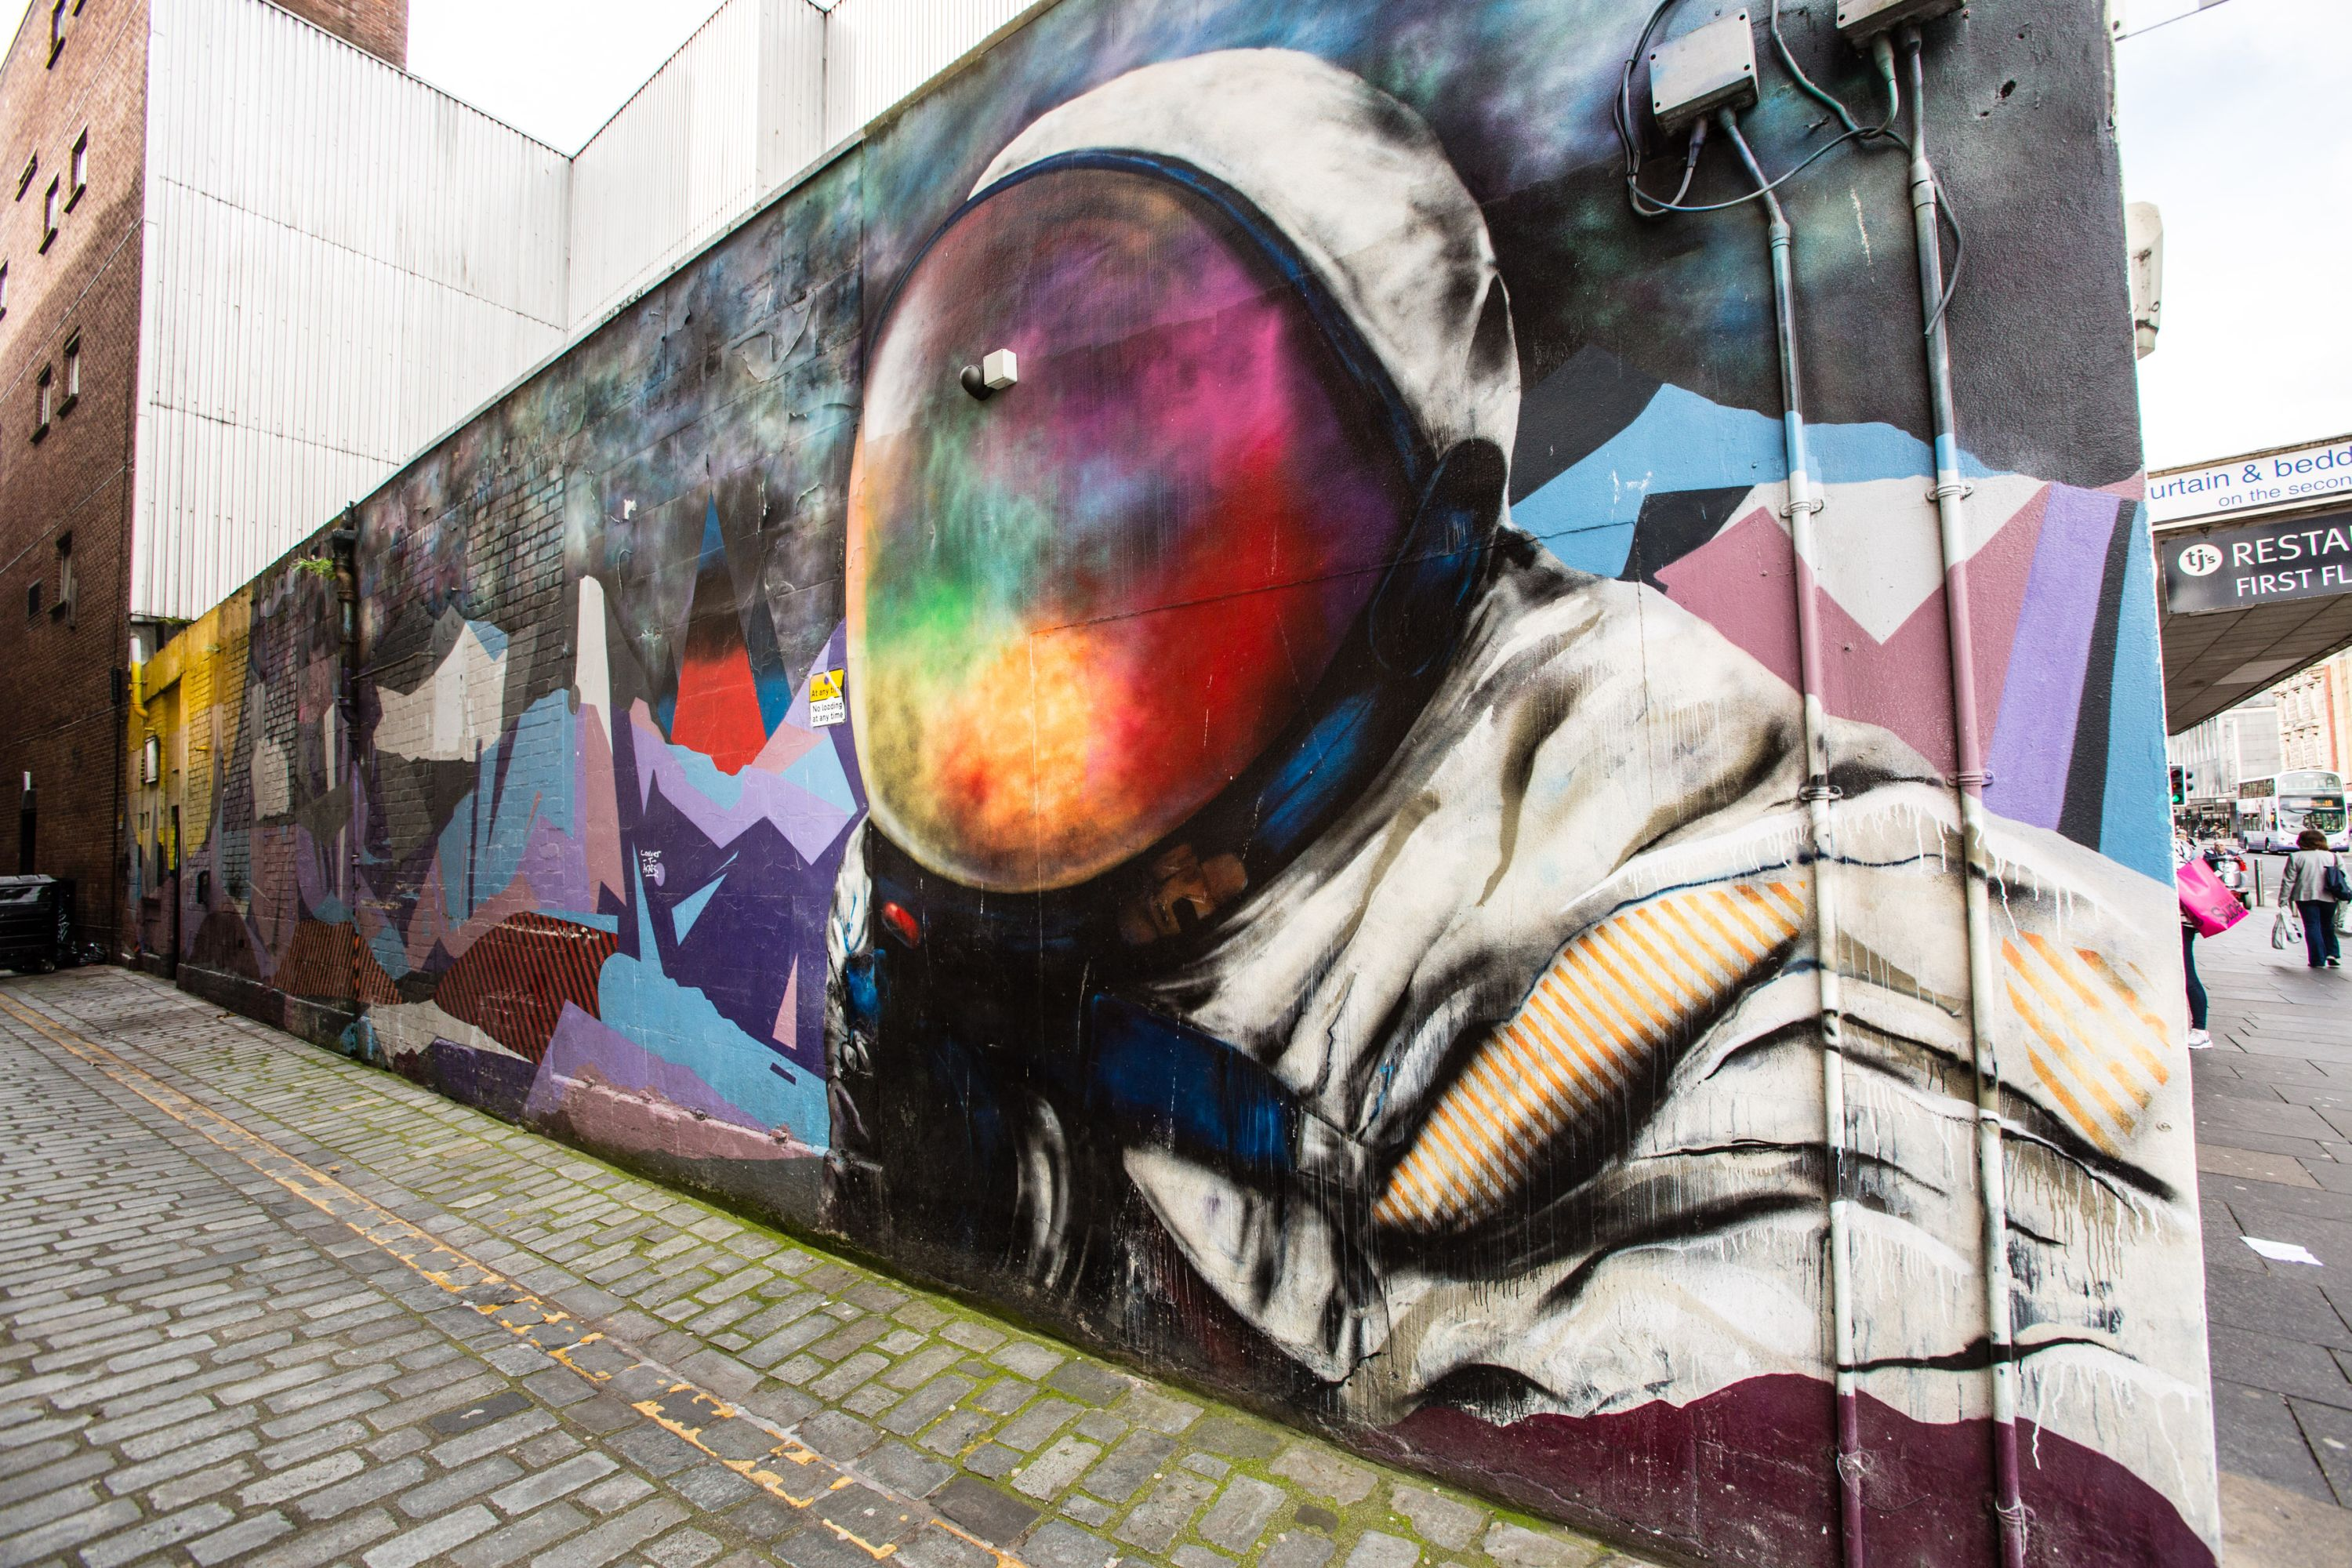 6. Spaceman by Recoat and FiST, New Wynd, Glasgow (2)